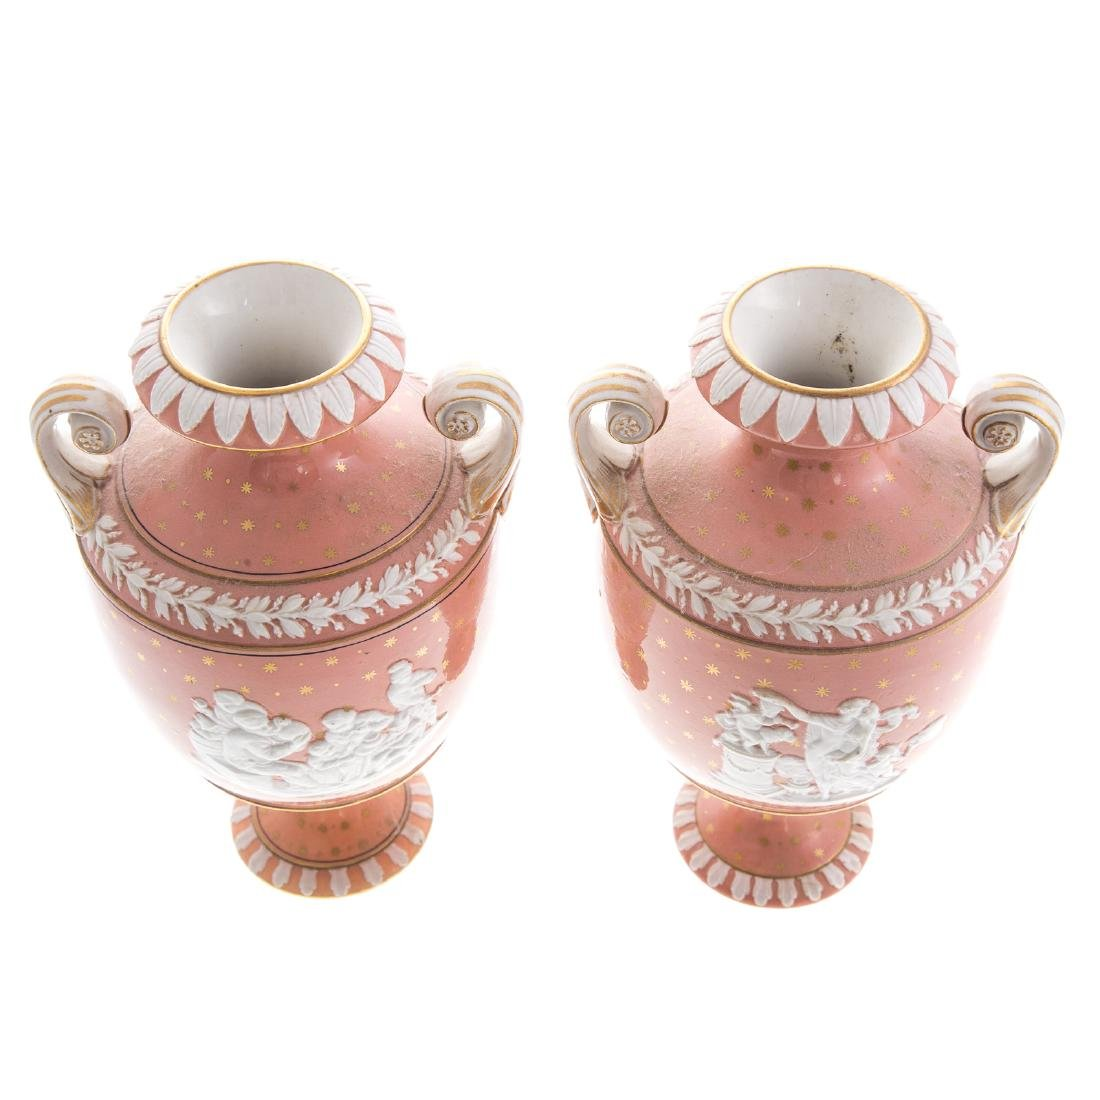 Pair Wedgwood glazed jasperware urns - 4